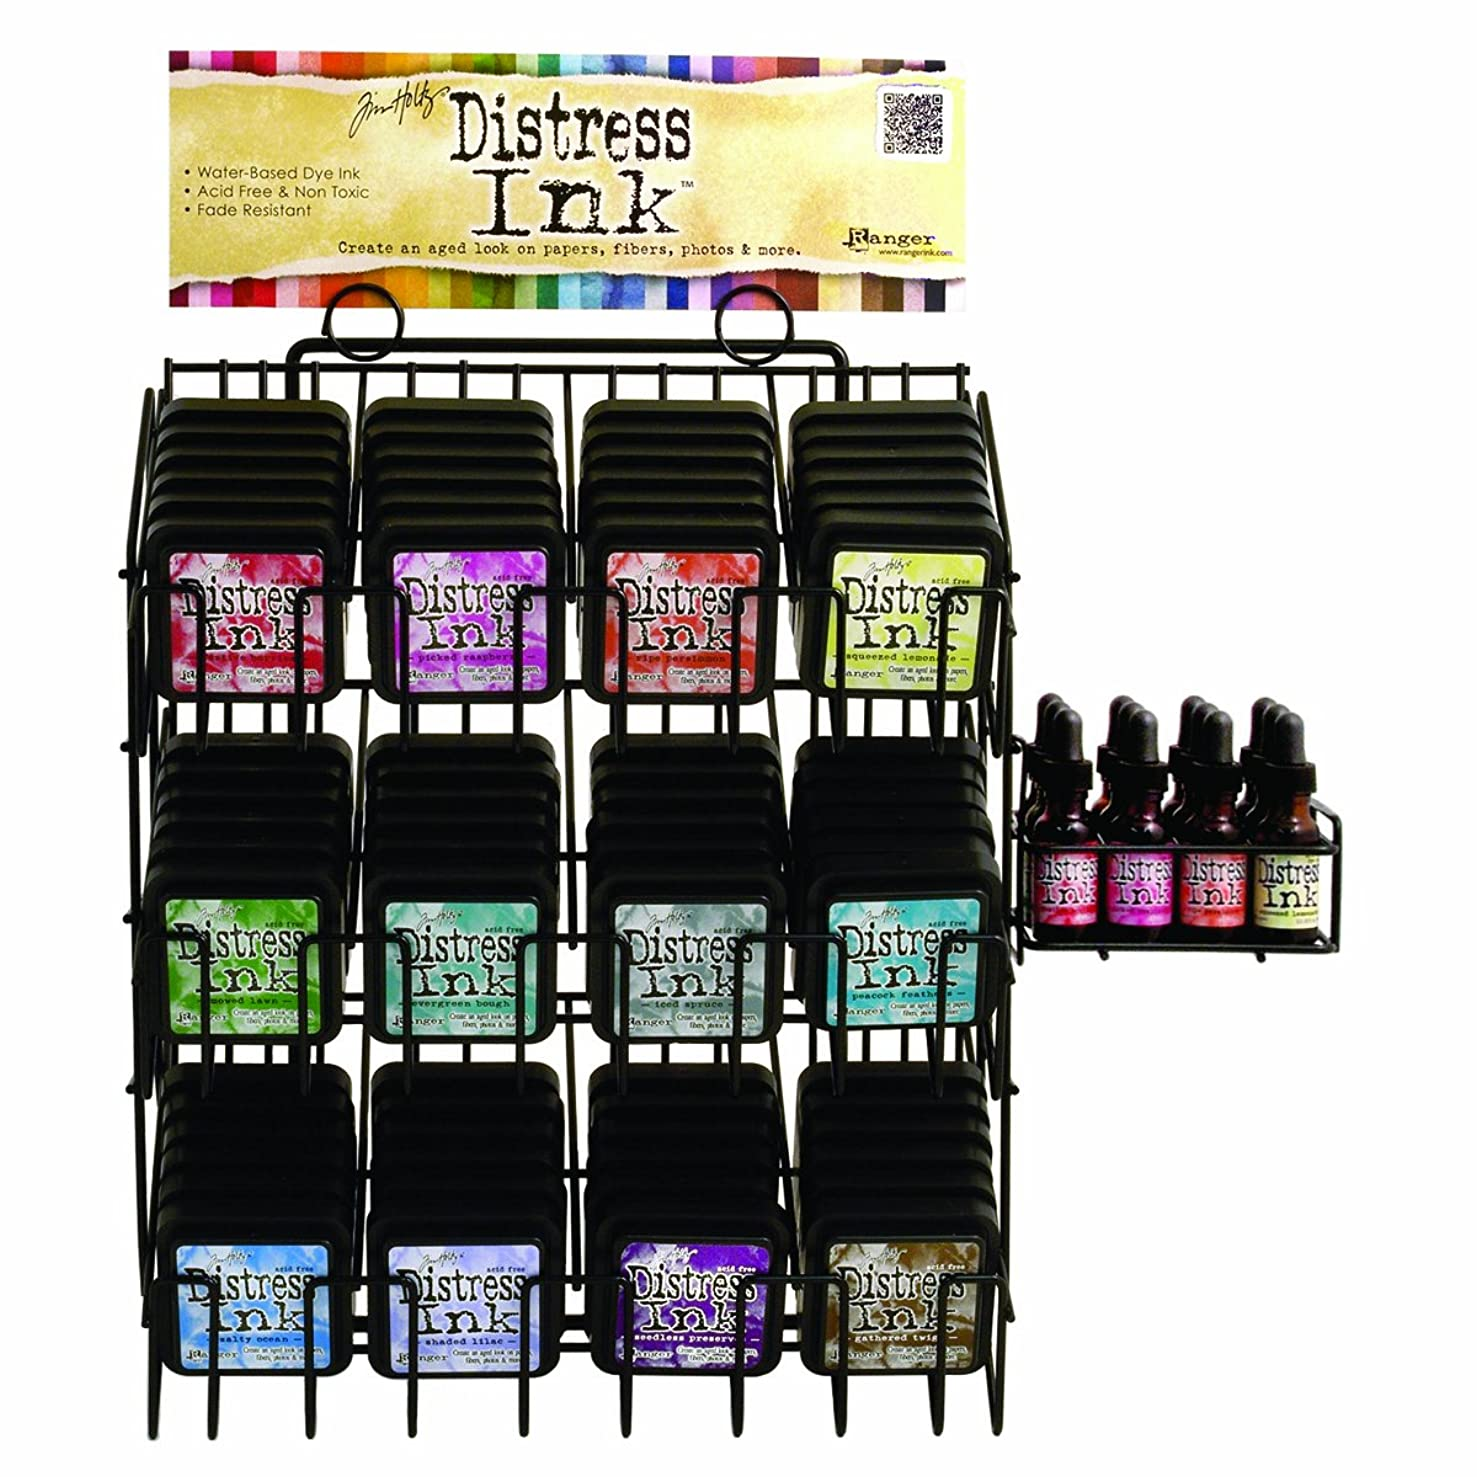 Ranger Distress Ink Assortment with Wire Rack and Sign